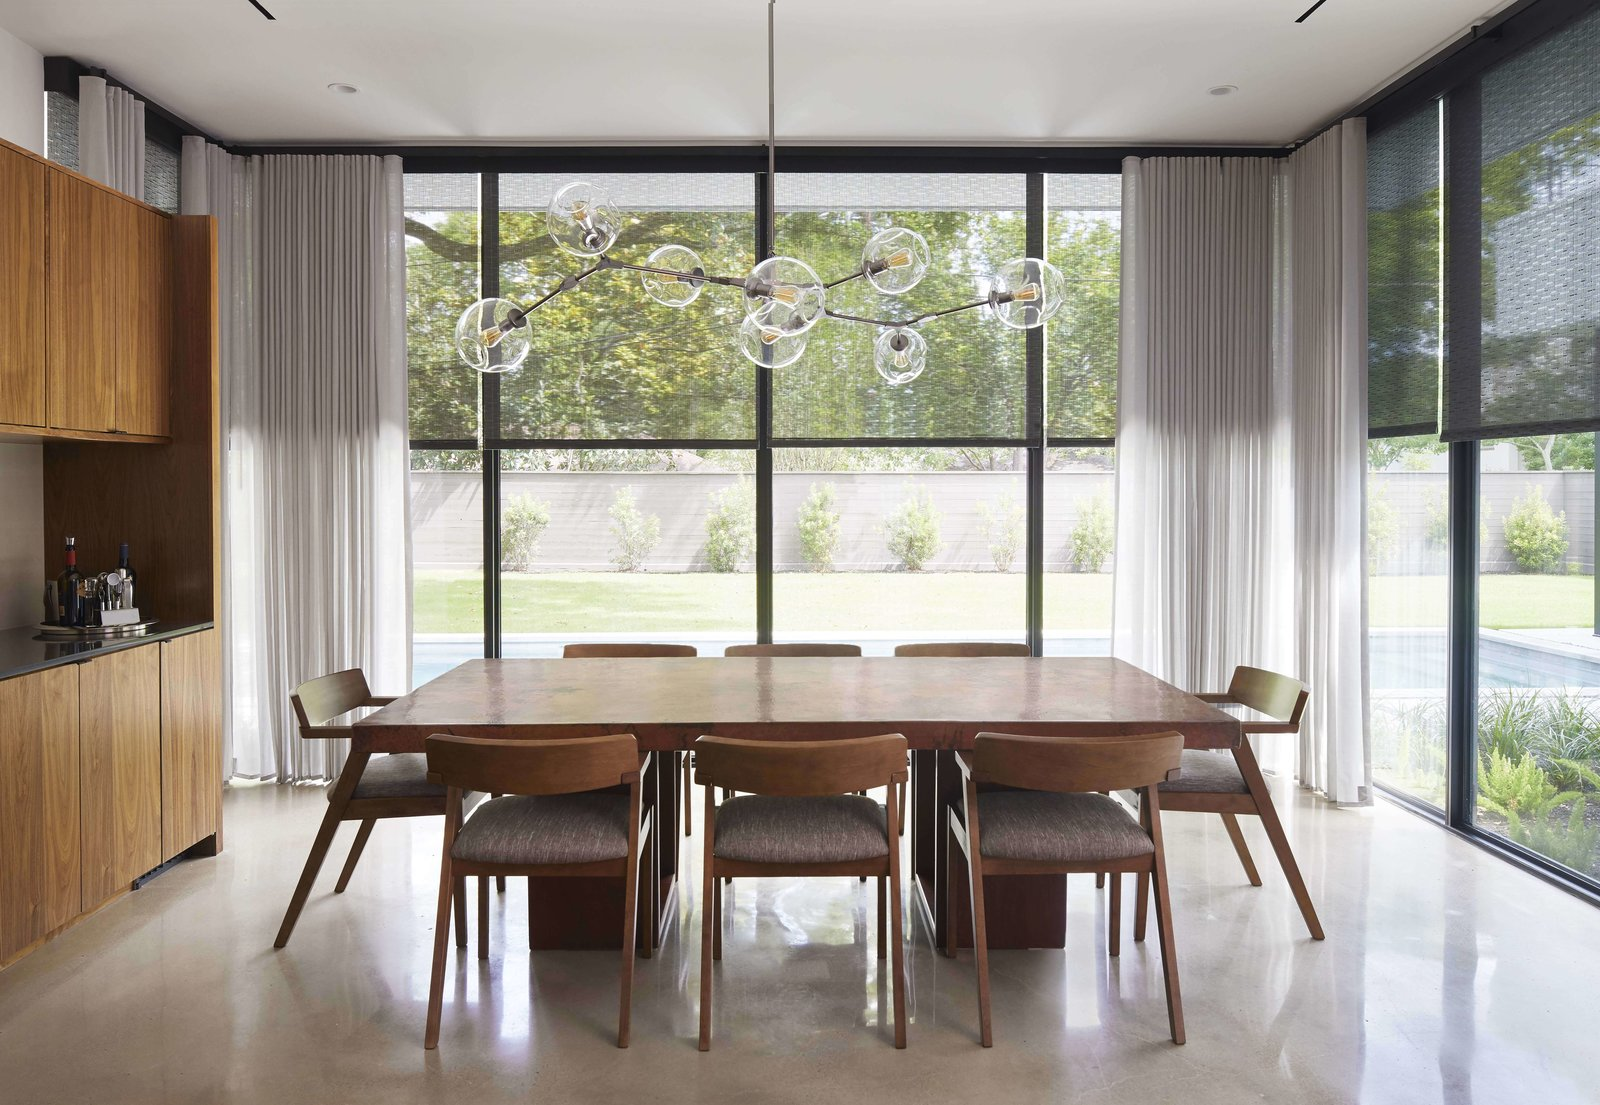 Photo 1 of 3 in Modern Shades and Draperies Integrate Seamlessly Into a Houston Renovation